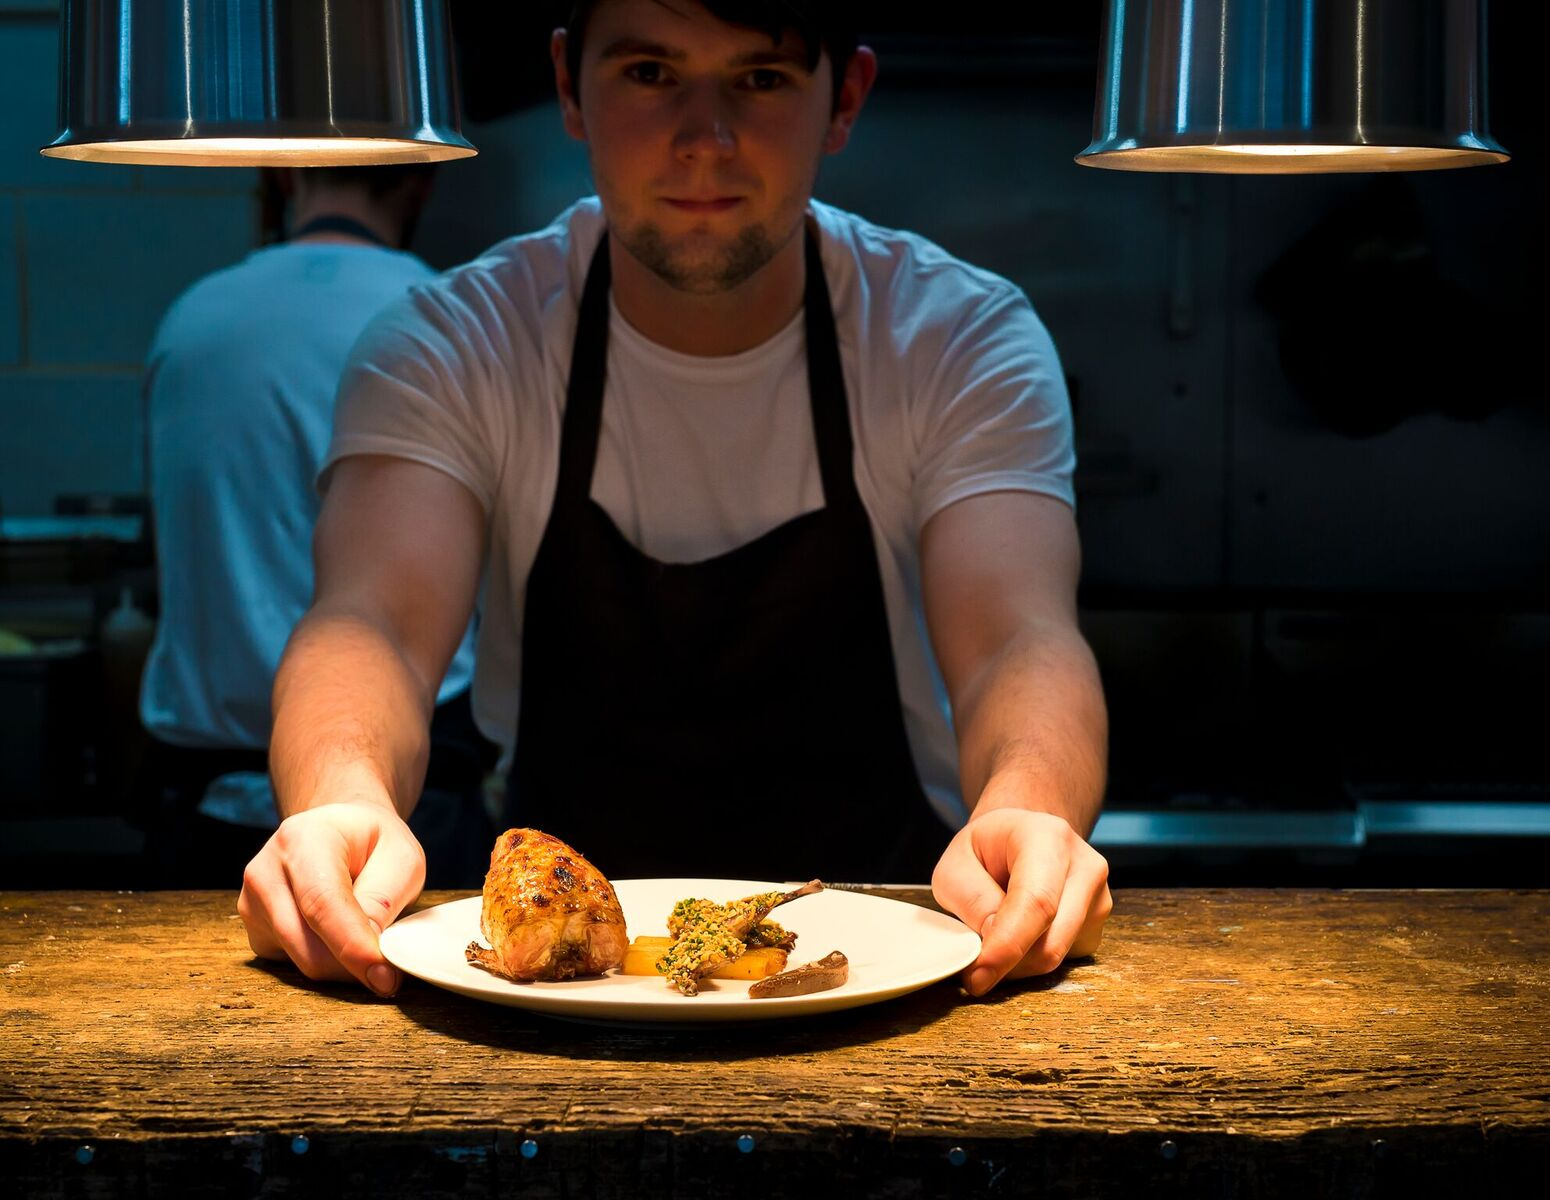 Rich Sharples head chef of Hispi